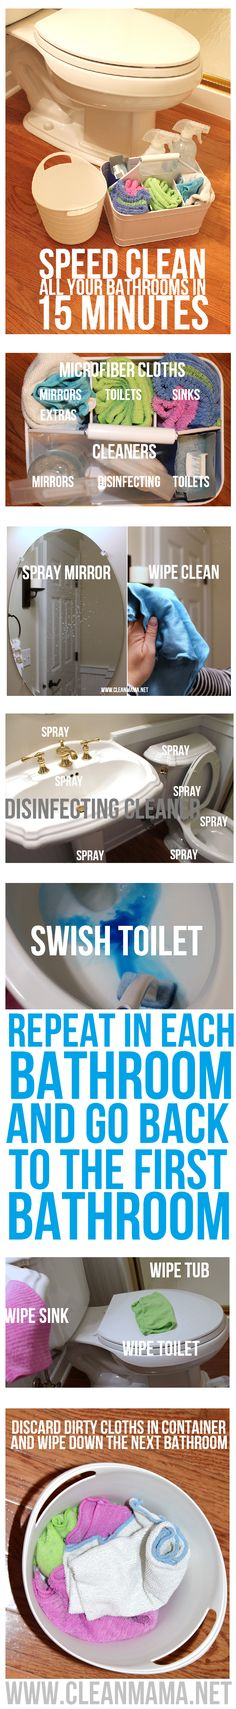 How often you should clean everything spring videos and for How often to clean bathroom